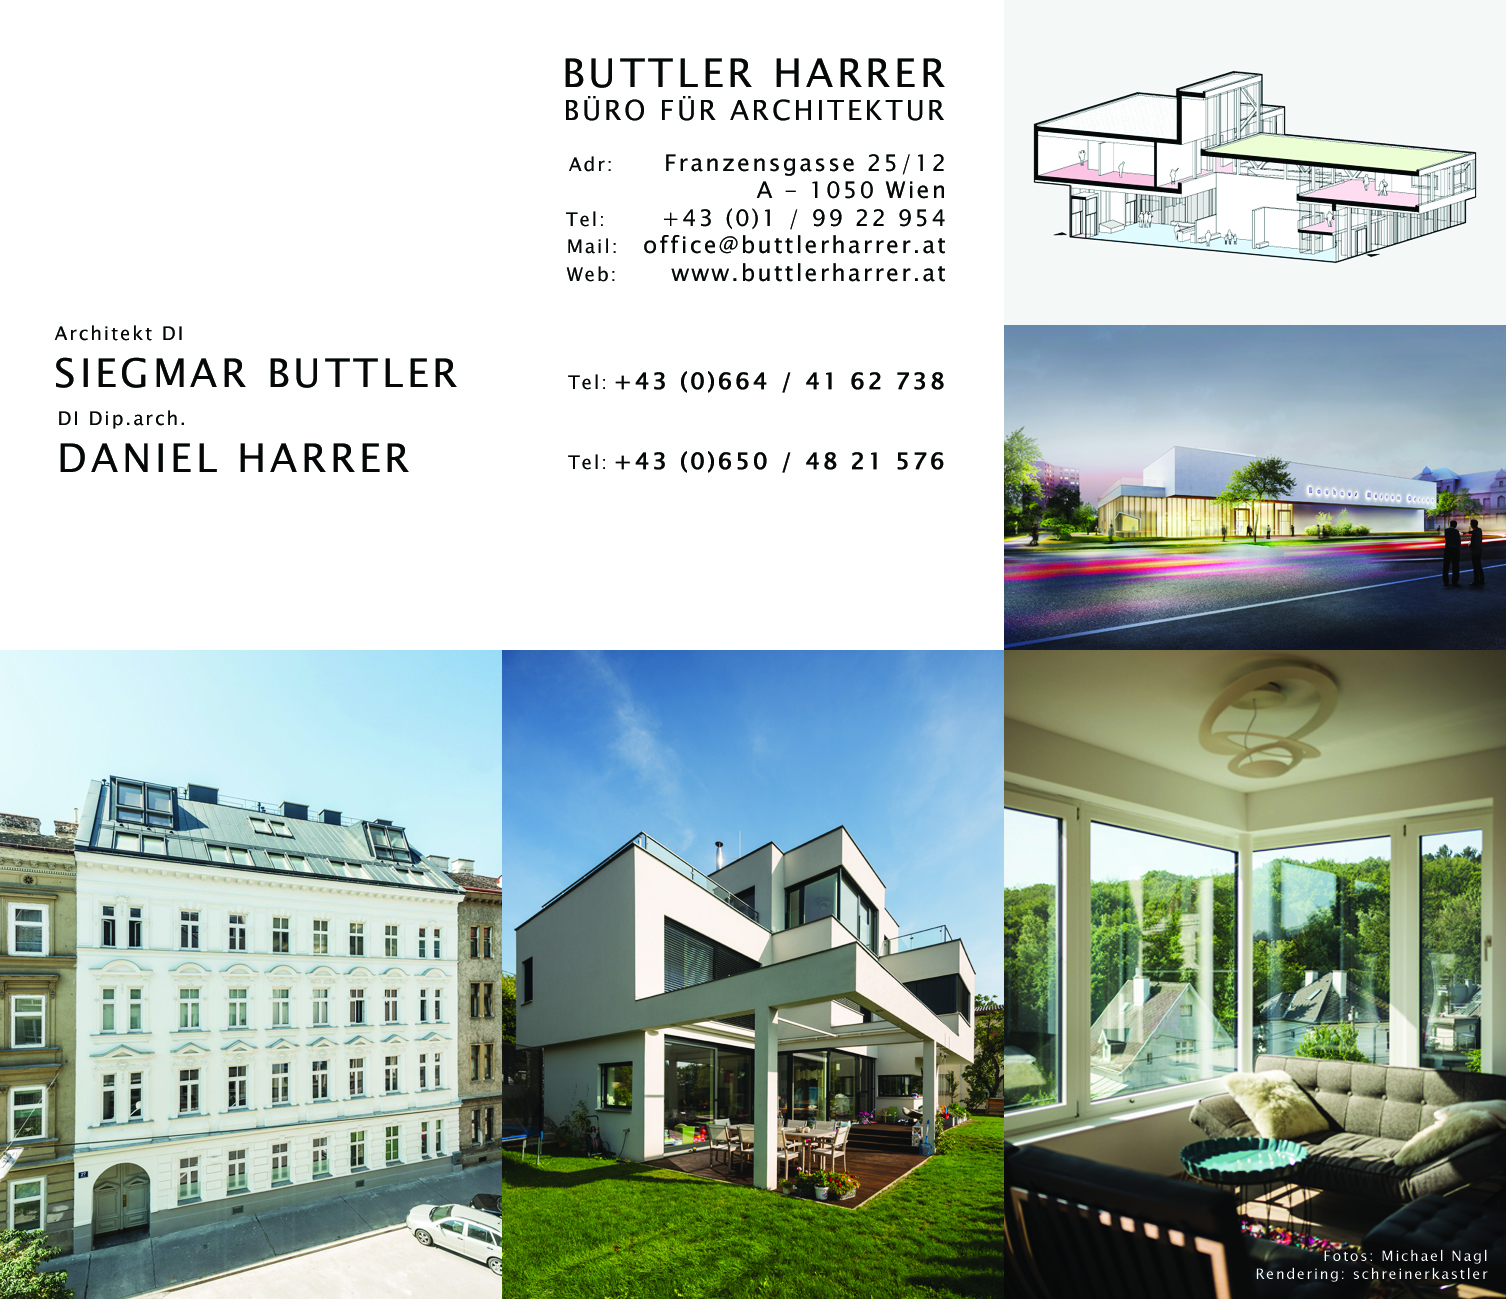 Buttler Harrer email, contact